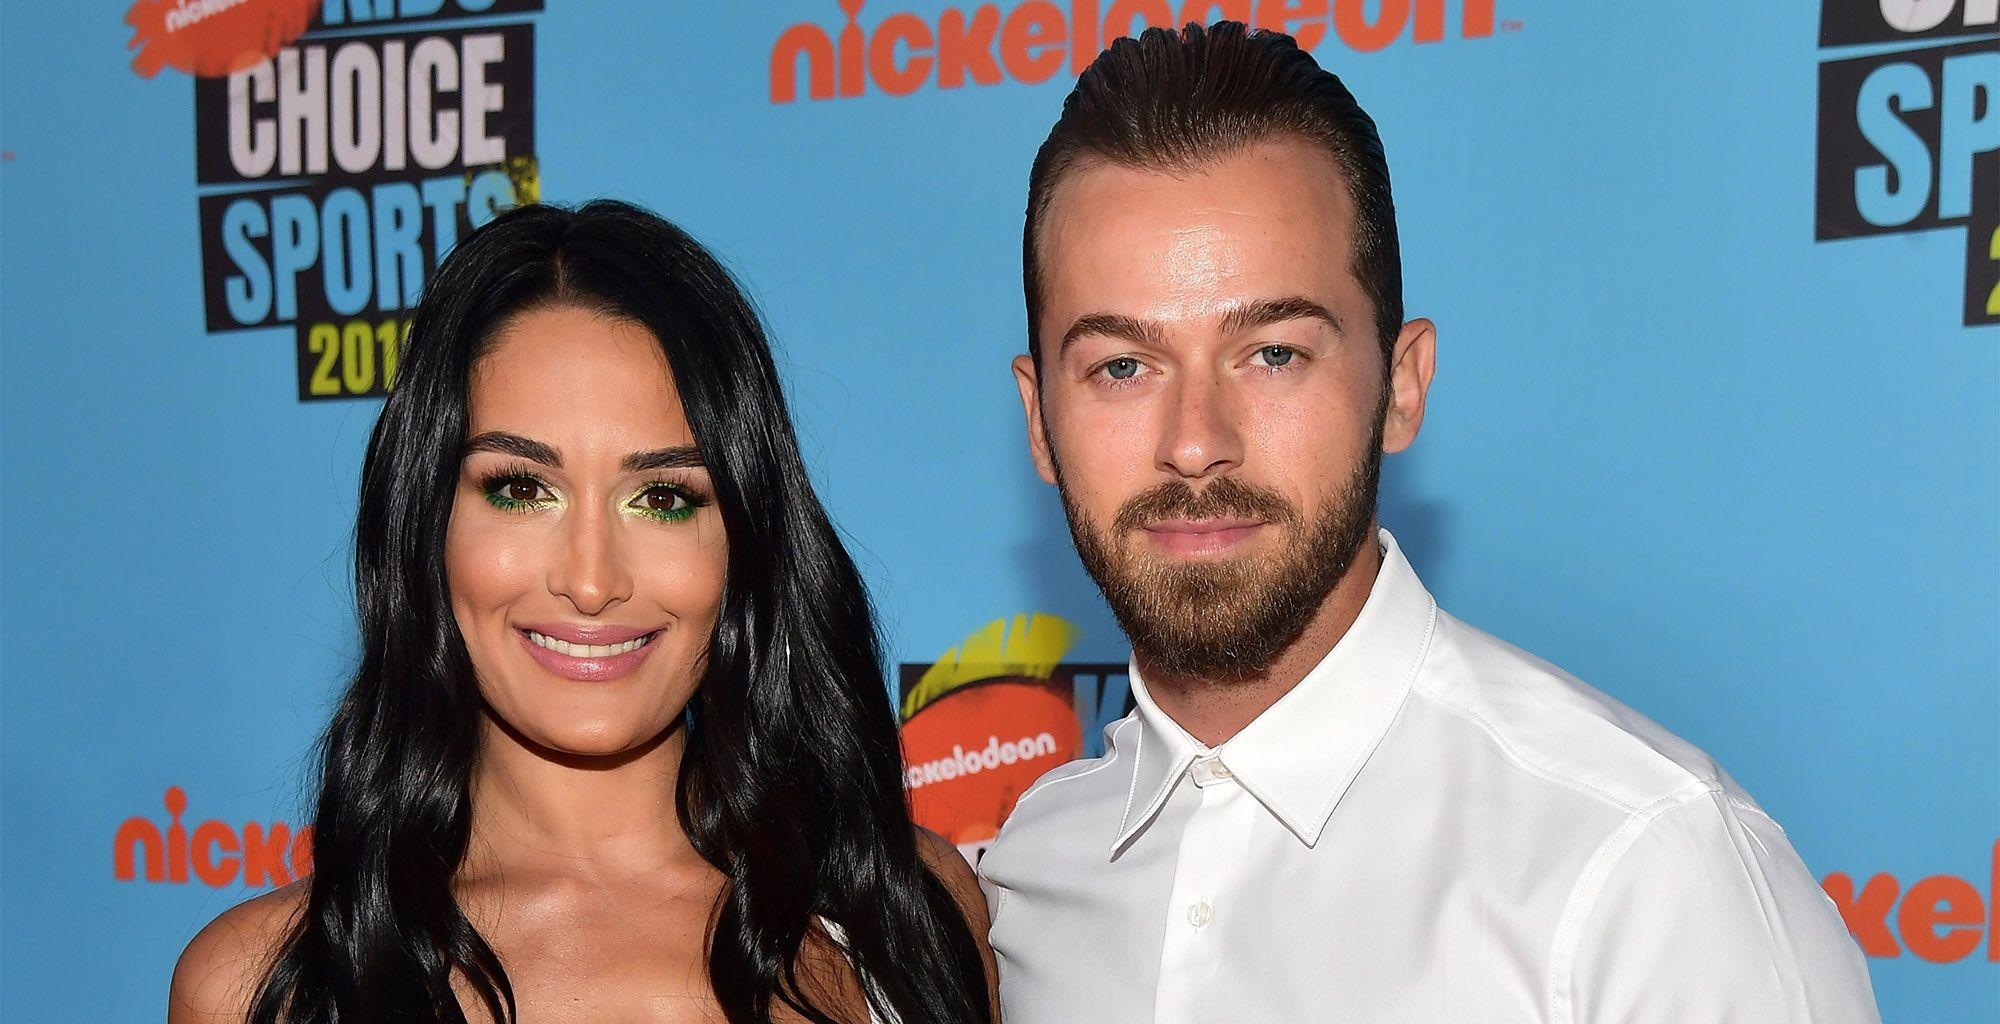 Nikki Bella Shares Pics Of Her Bare Baby Bump As She Can't Wait To Meet Her Bundle Of Joy!